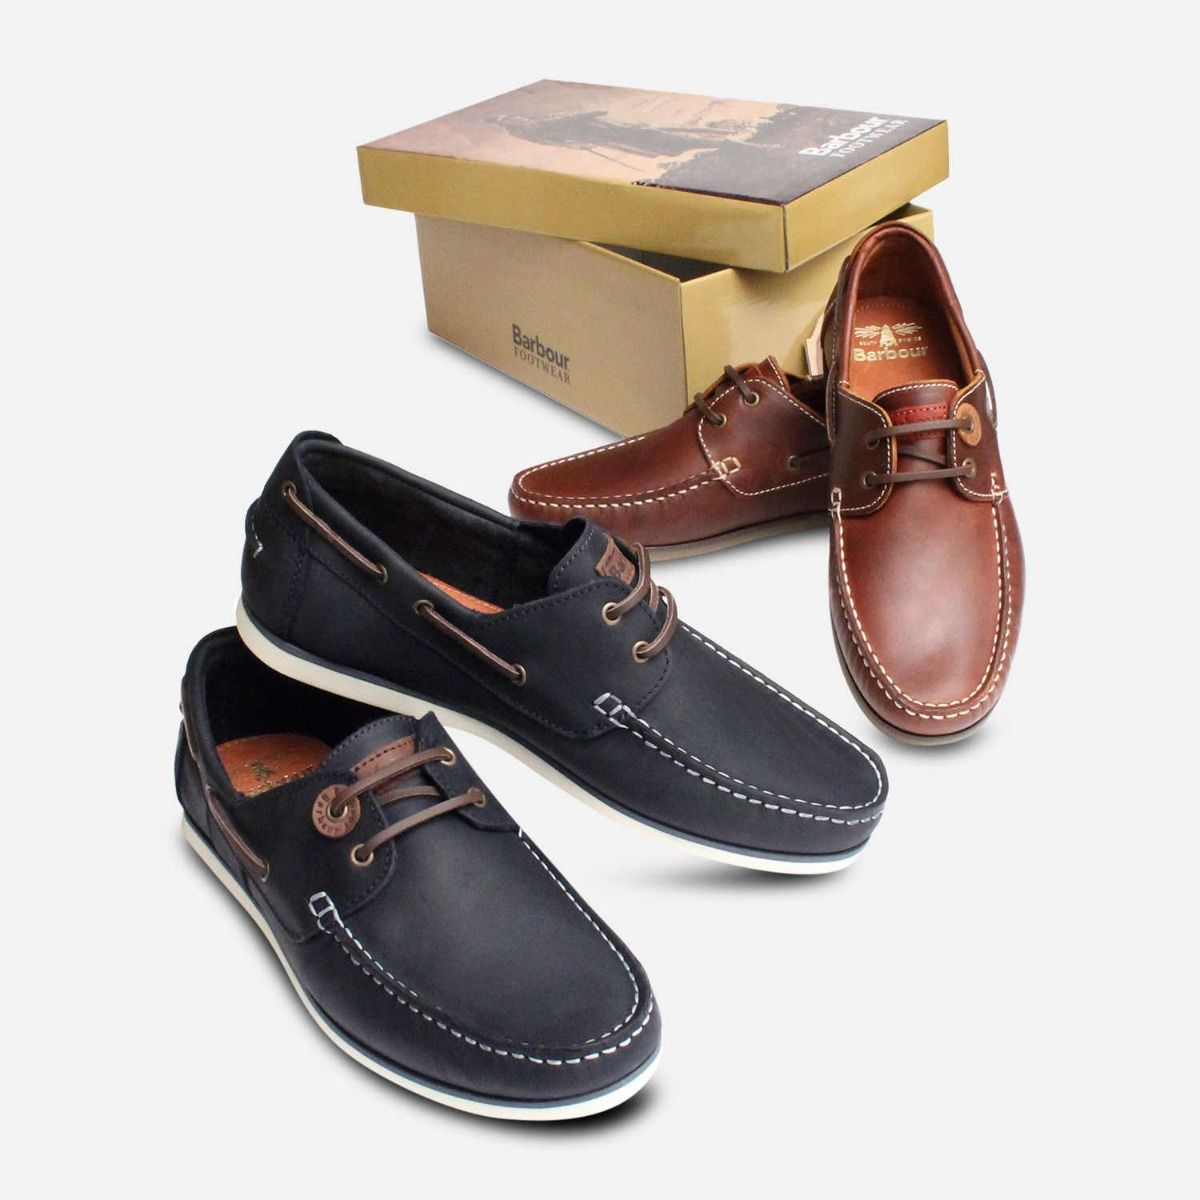 Barbour Capstan Navy Blue & White Boat Shoes